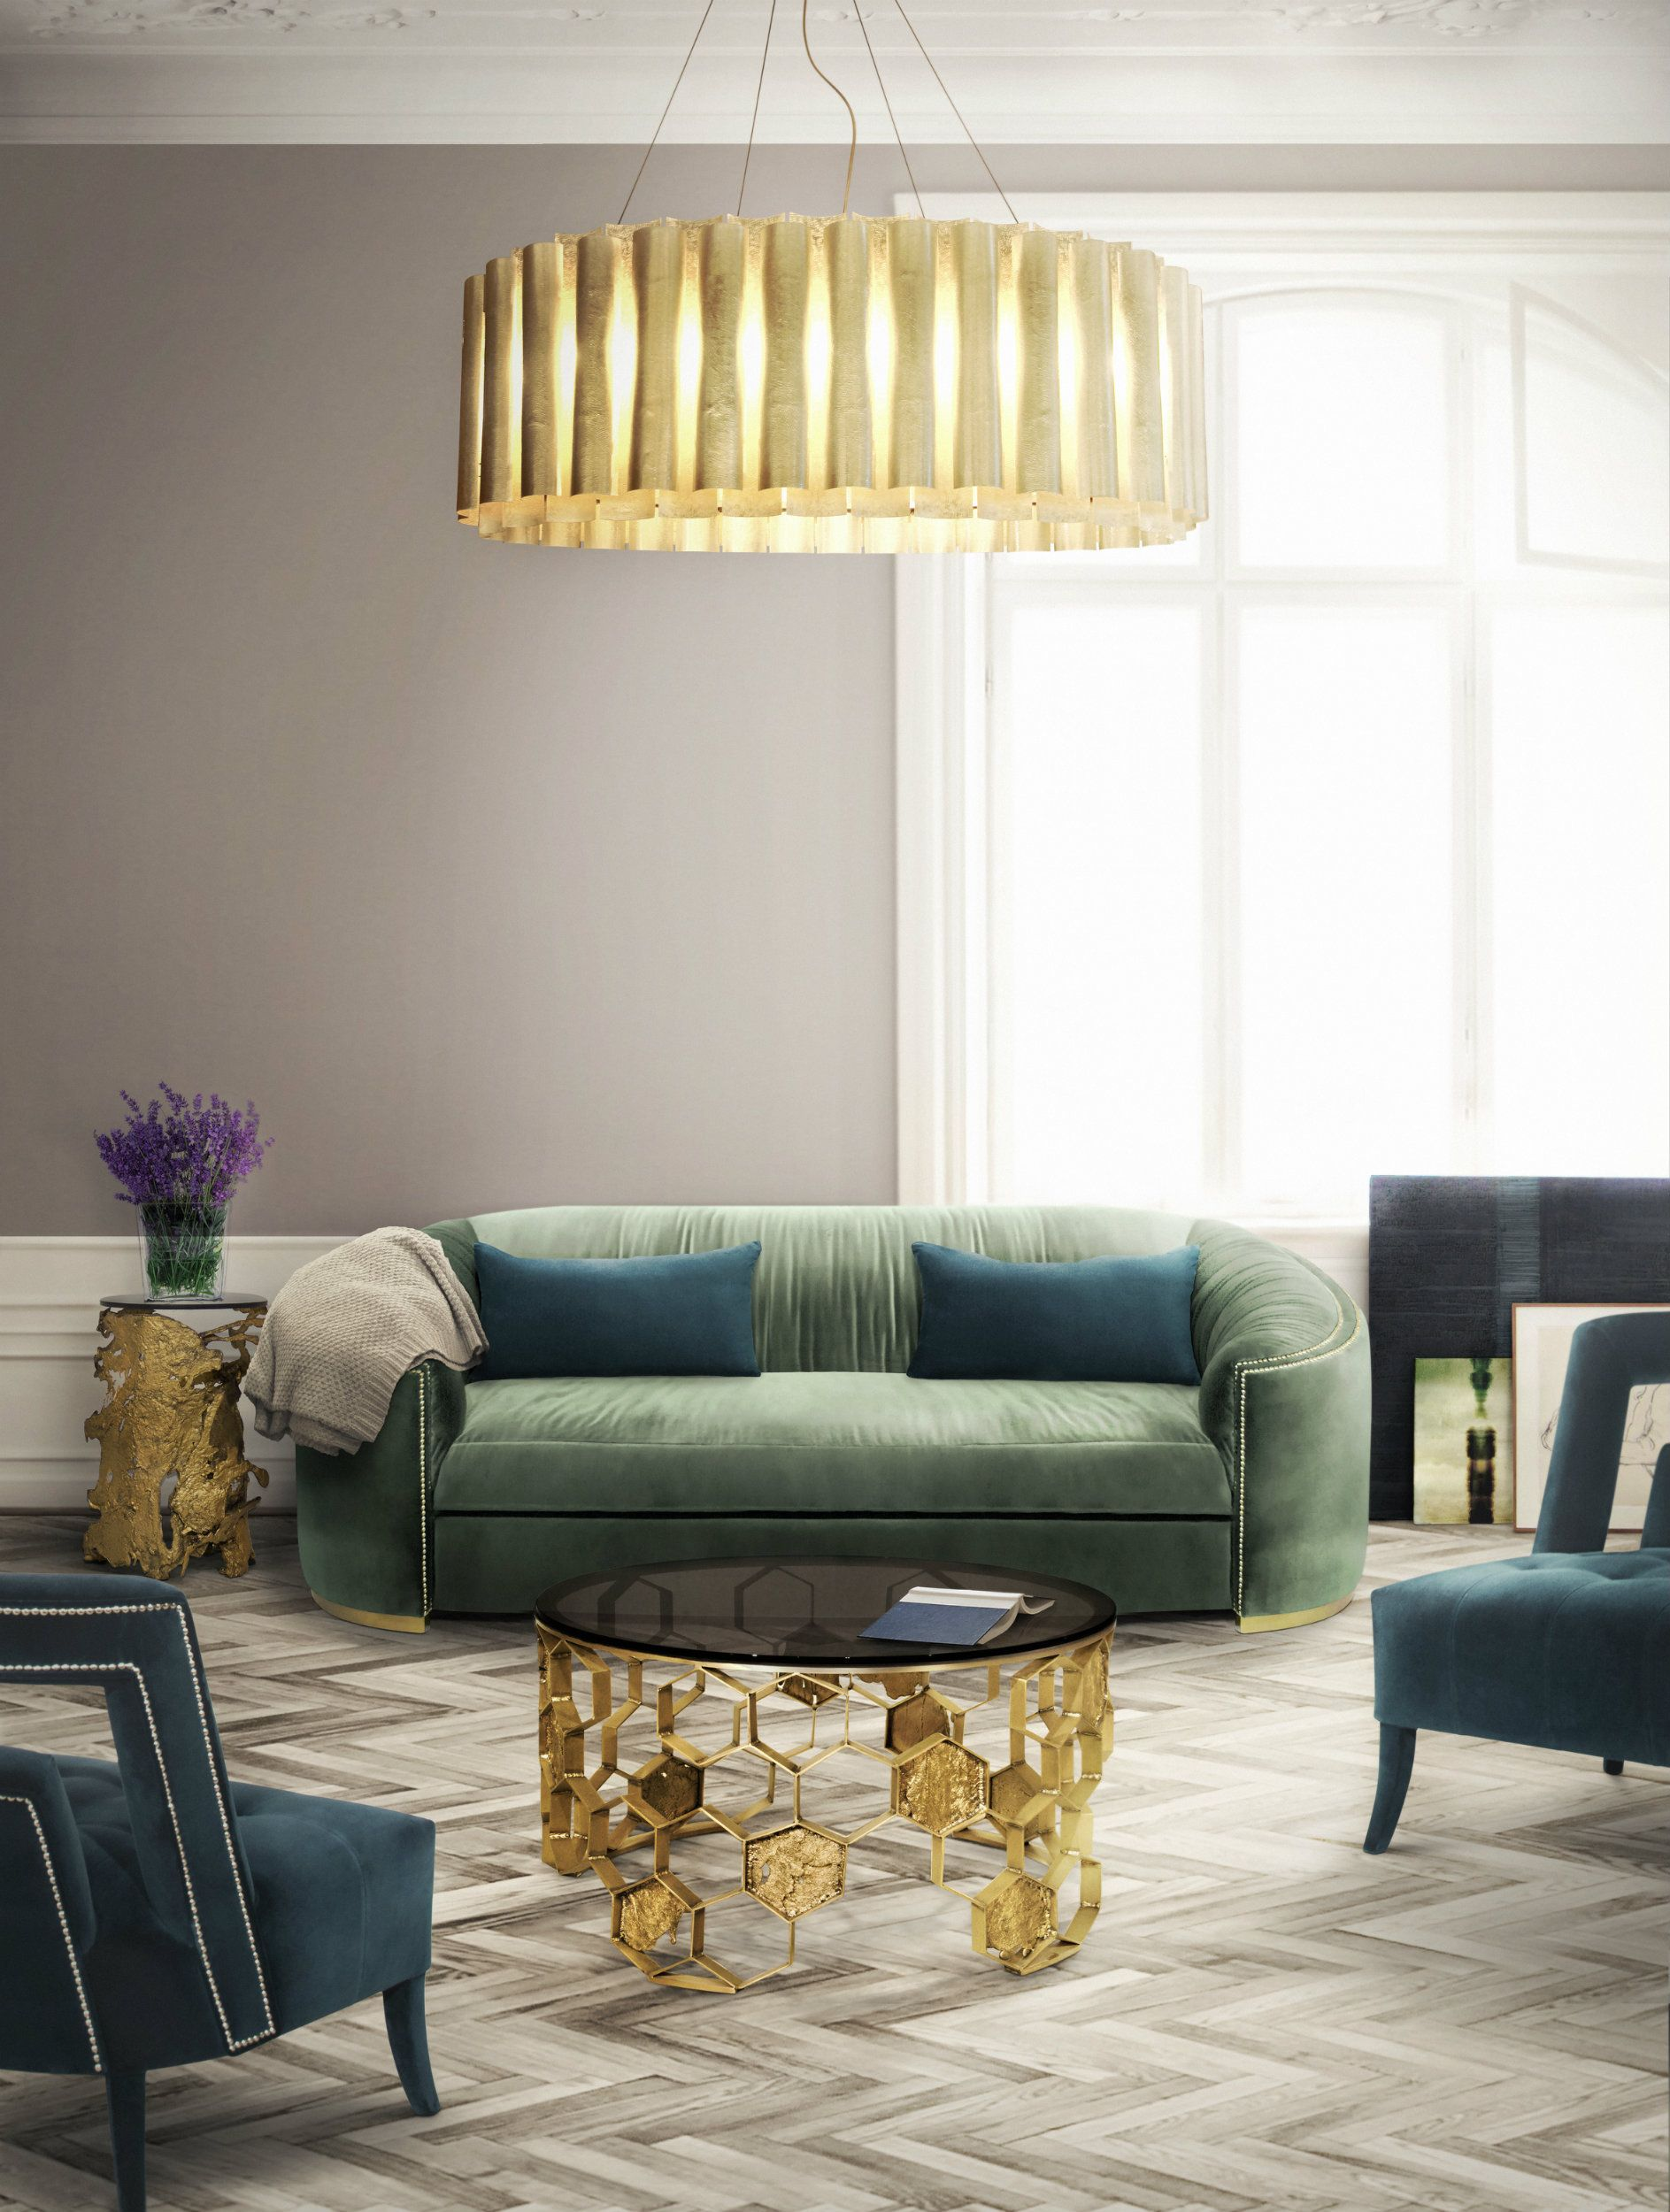 Midcentury living room ideas by brabbu colorful upholstery with wales green velvet two seat sofa naj blue lounge chairs manuka brass center table with